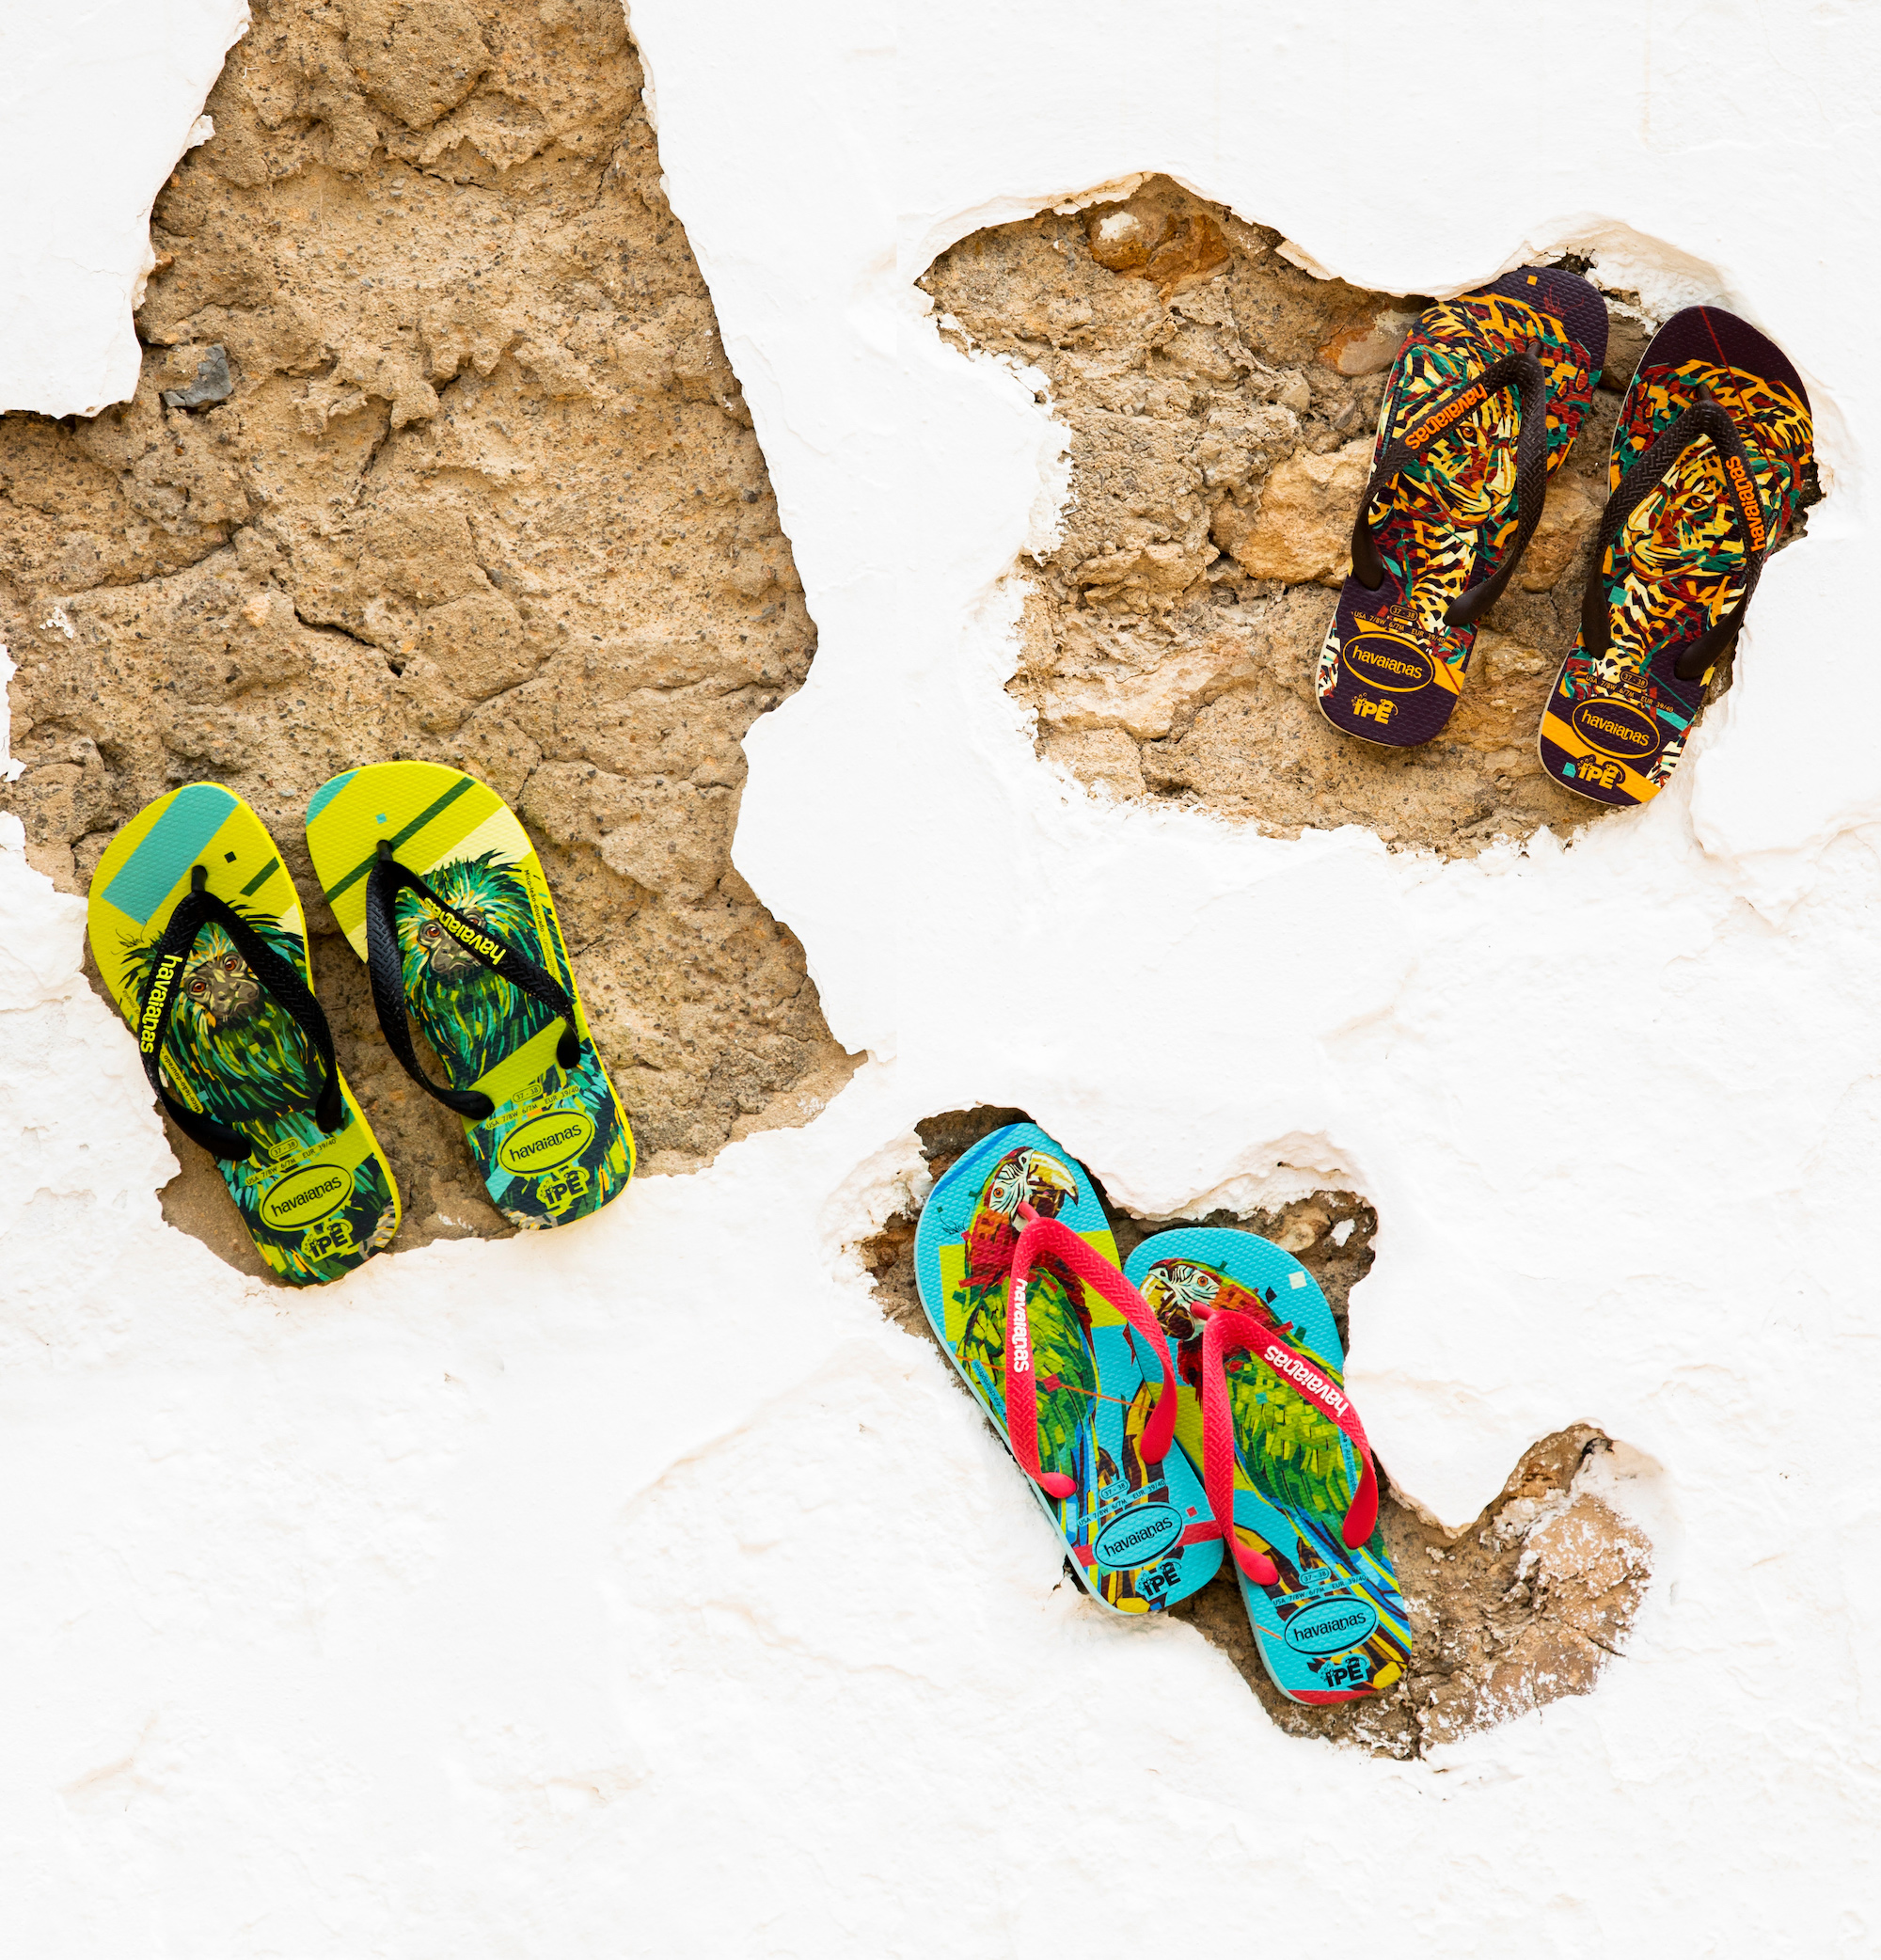 Havaianas x Arlin Graff collaboration shoe collection